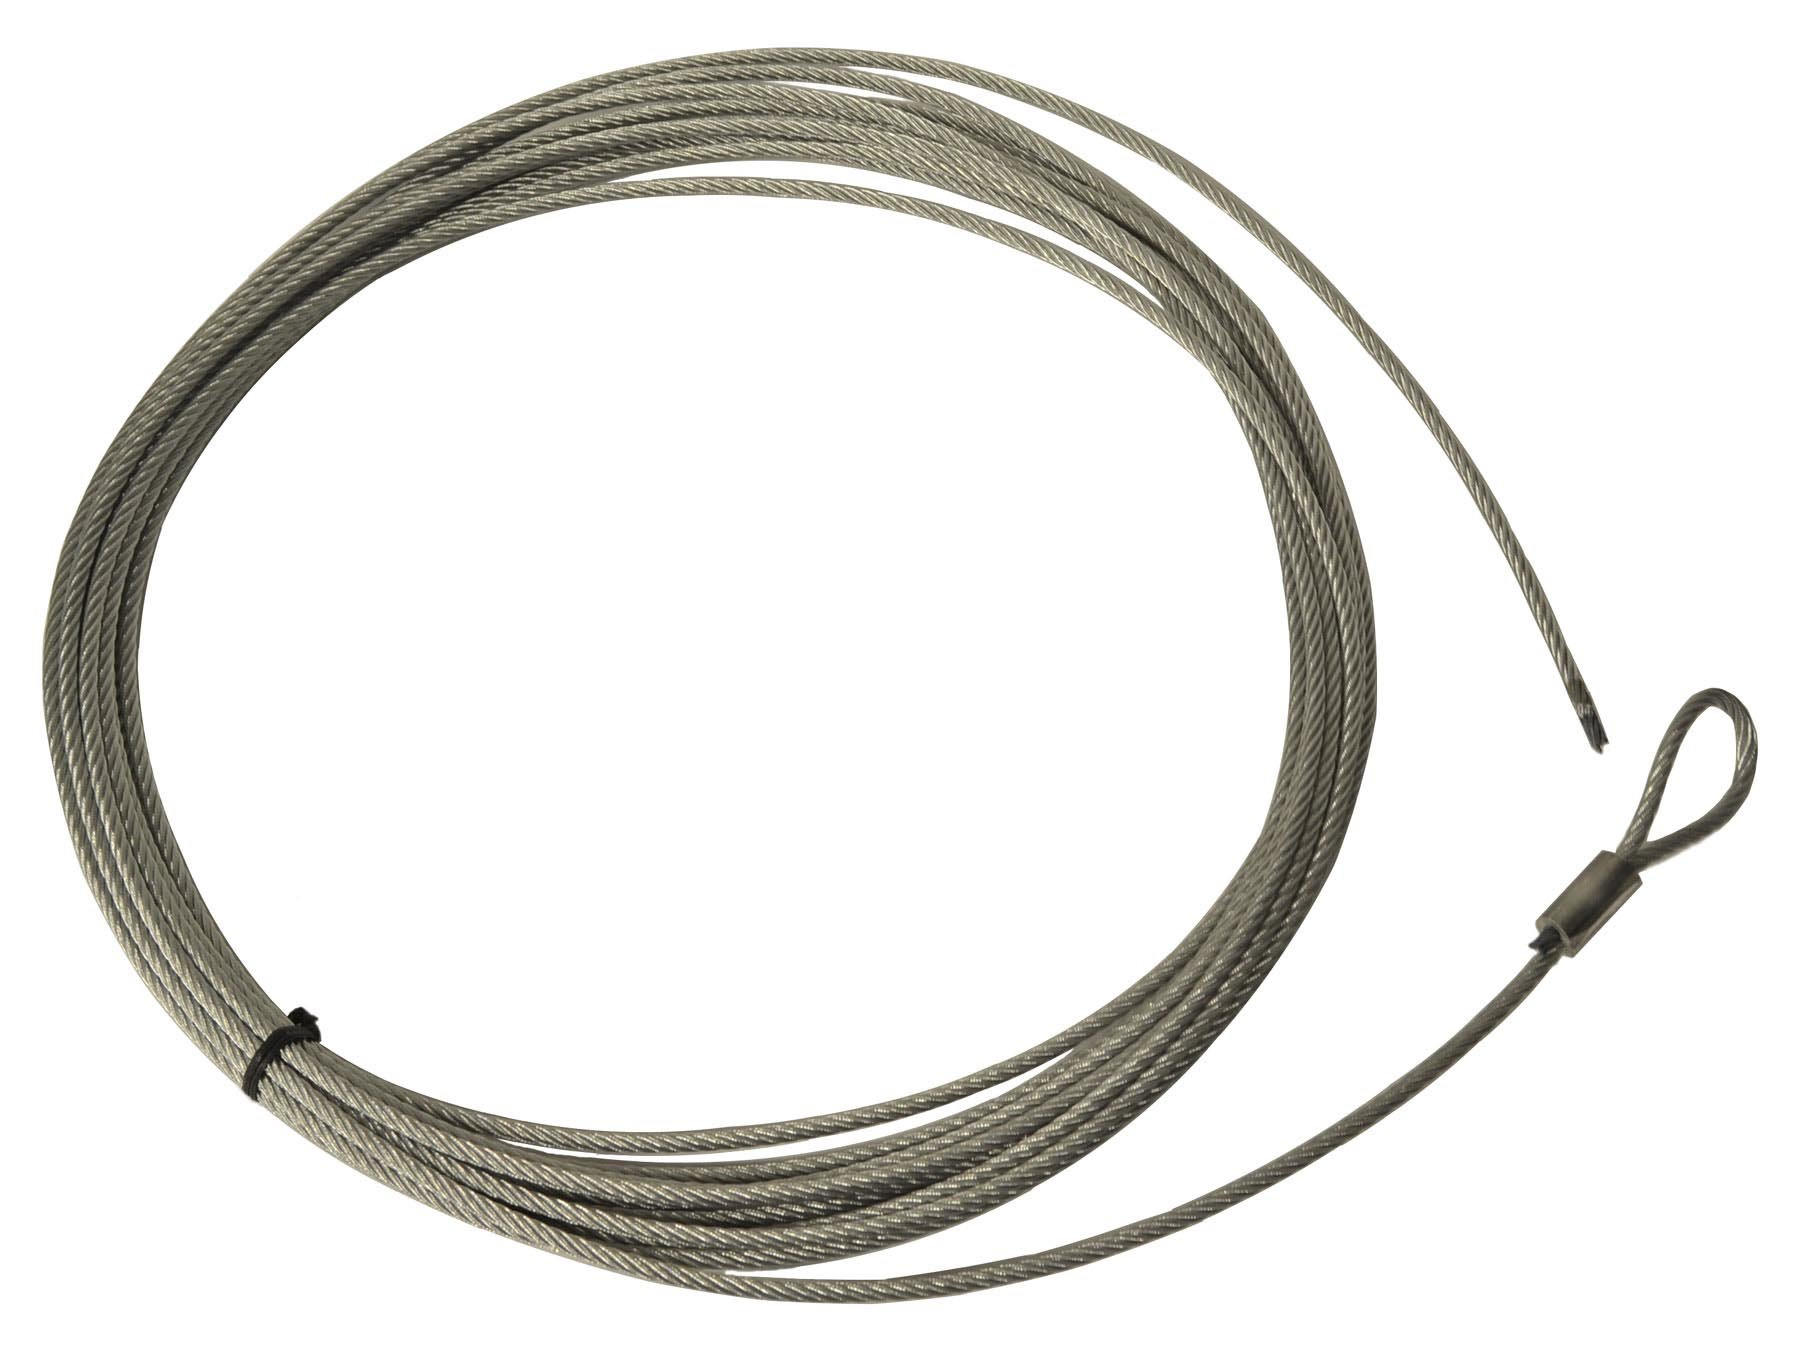 Warn 82654 Wire Rope Assembly for 1000AC Winches